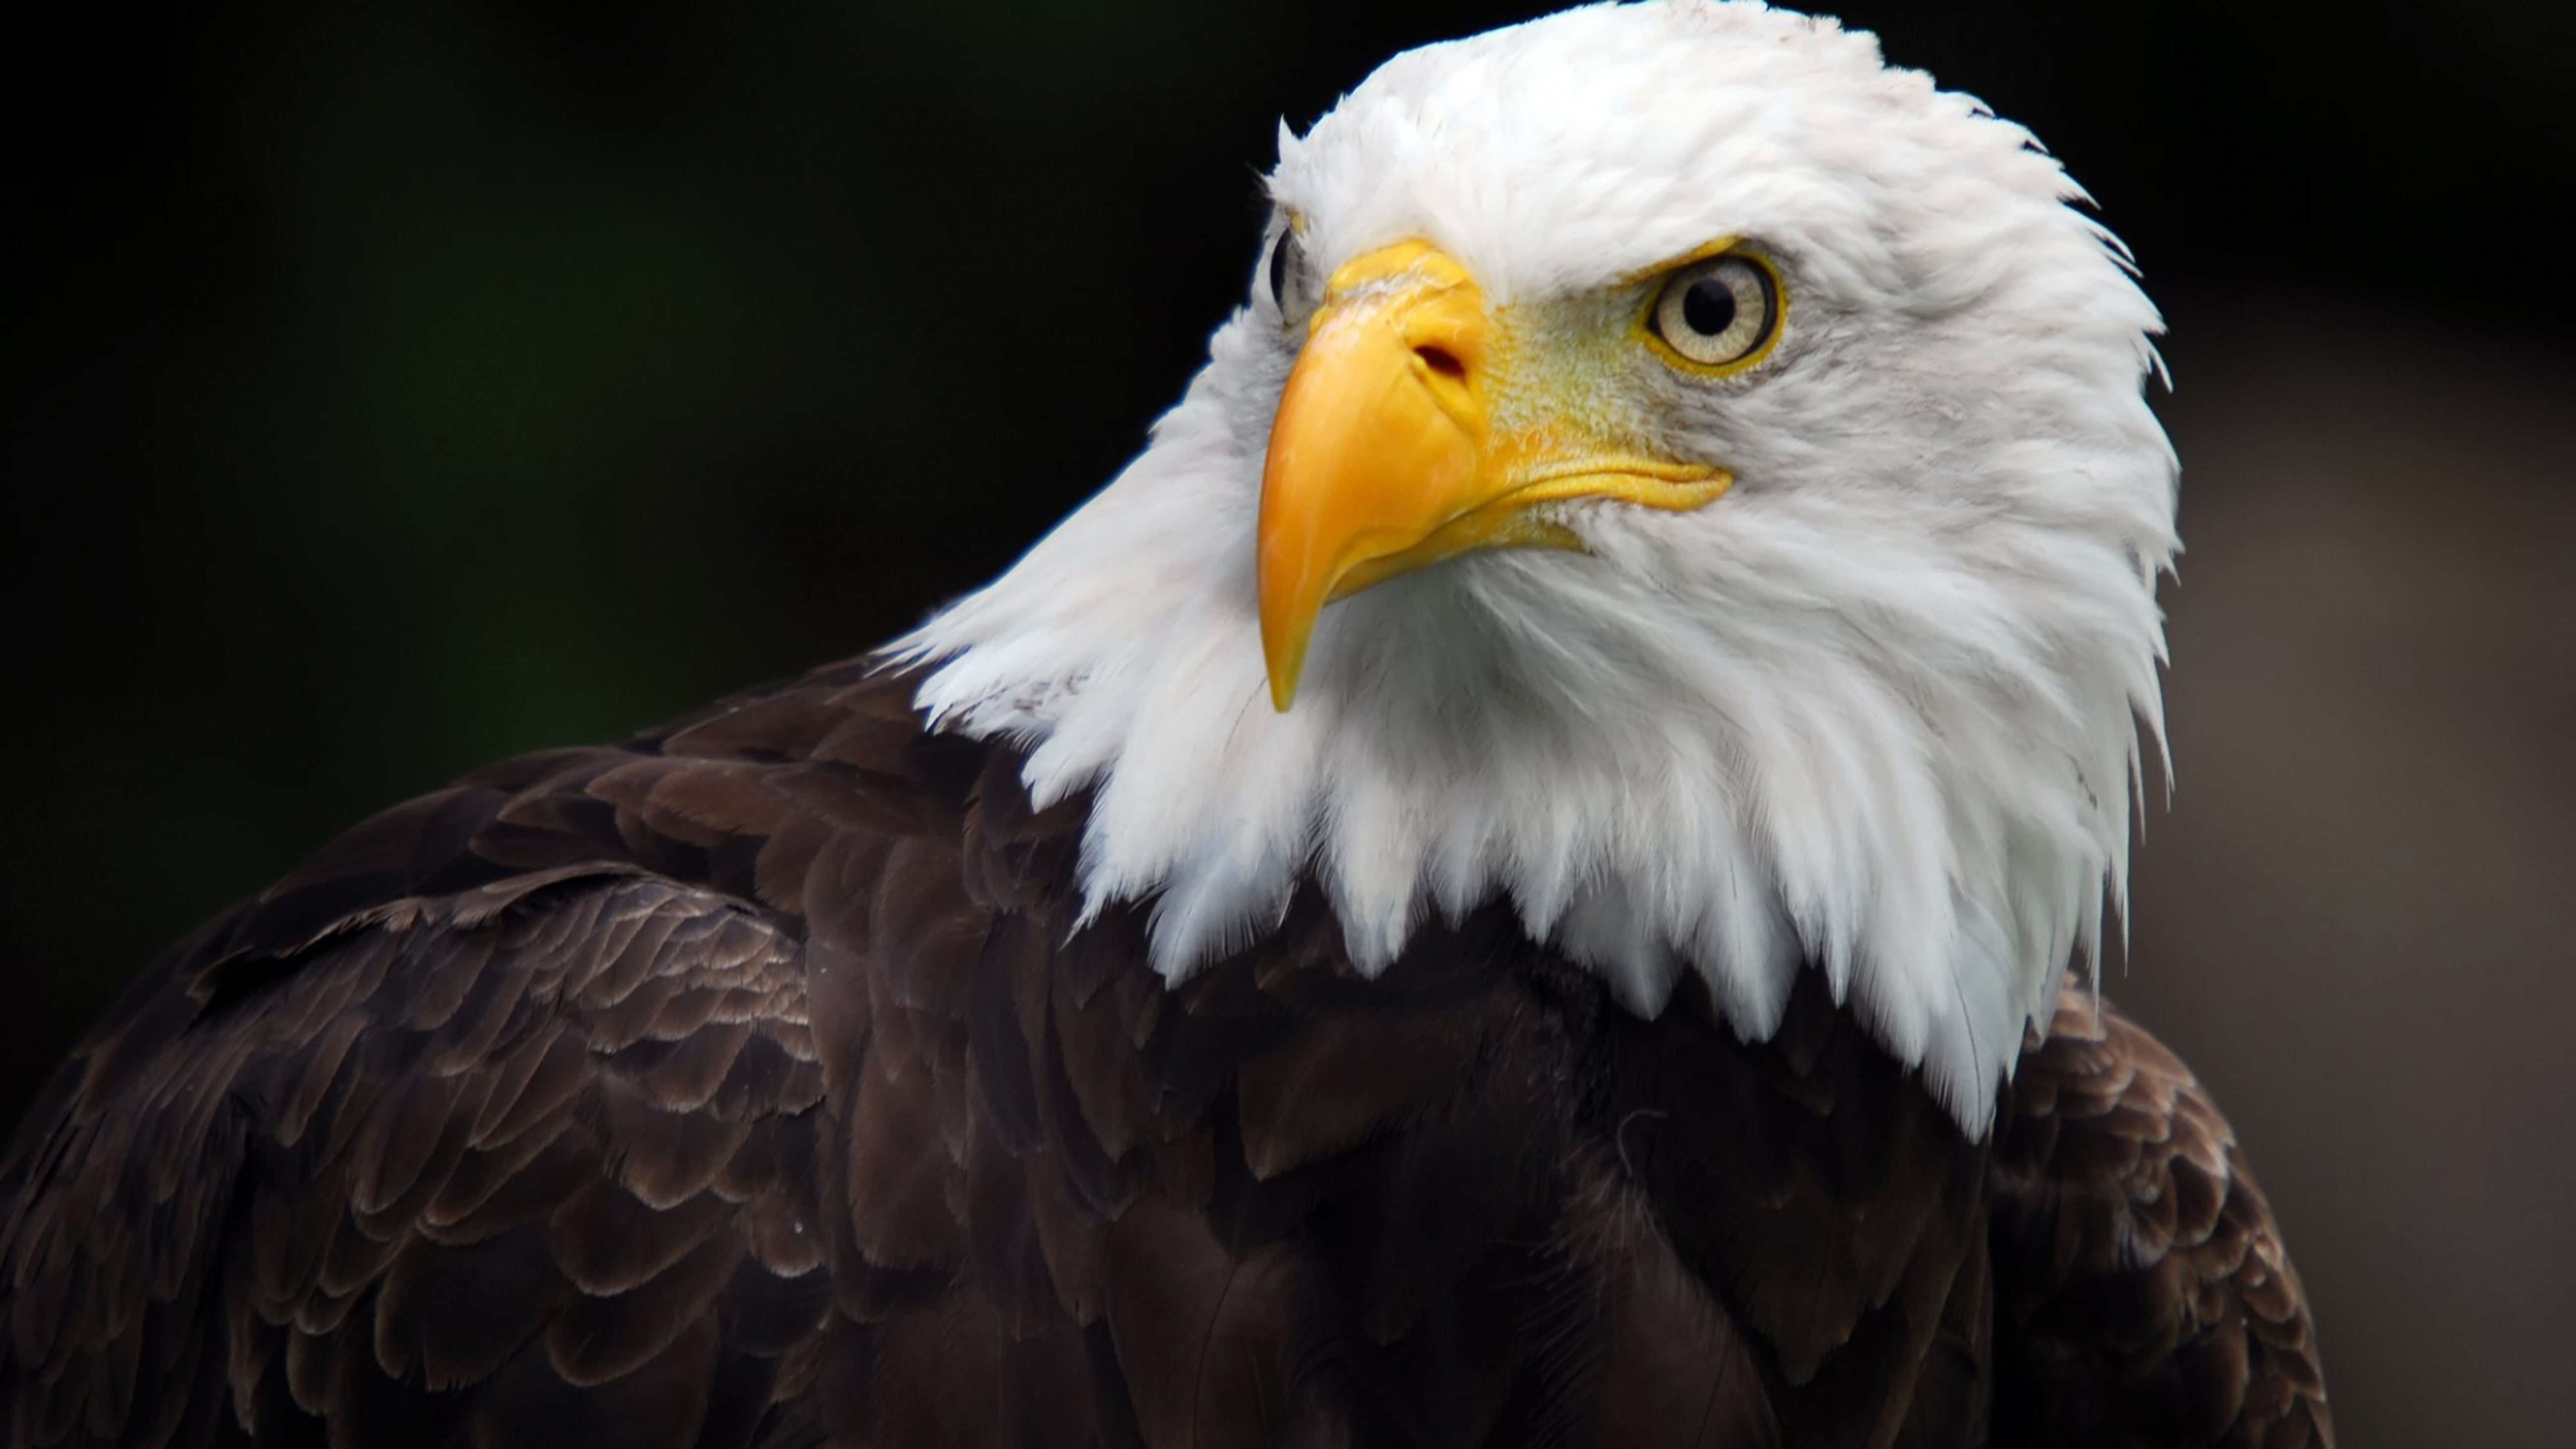 Eagle Wallpaper Iphone X American Bald Eagle Desktop Hd Wallpaper For Pc Tablet And